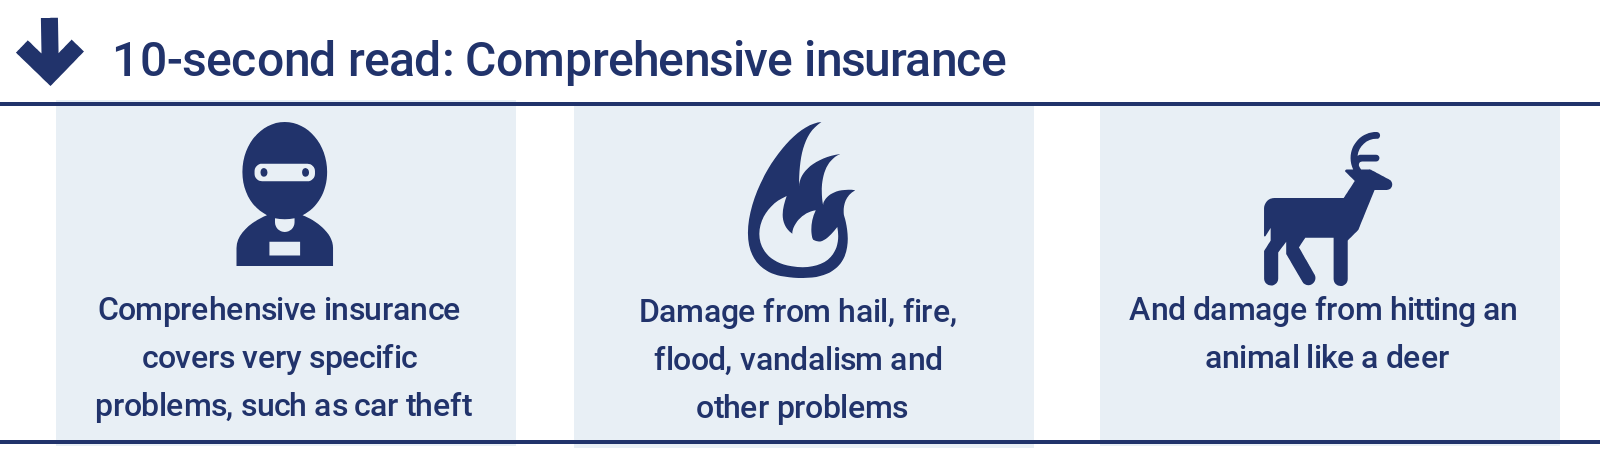 What Is Comprehensive Insurance